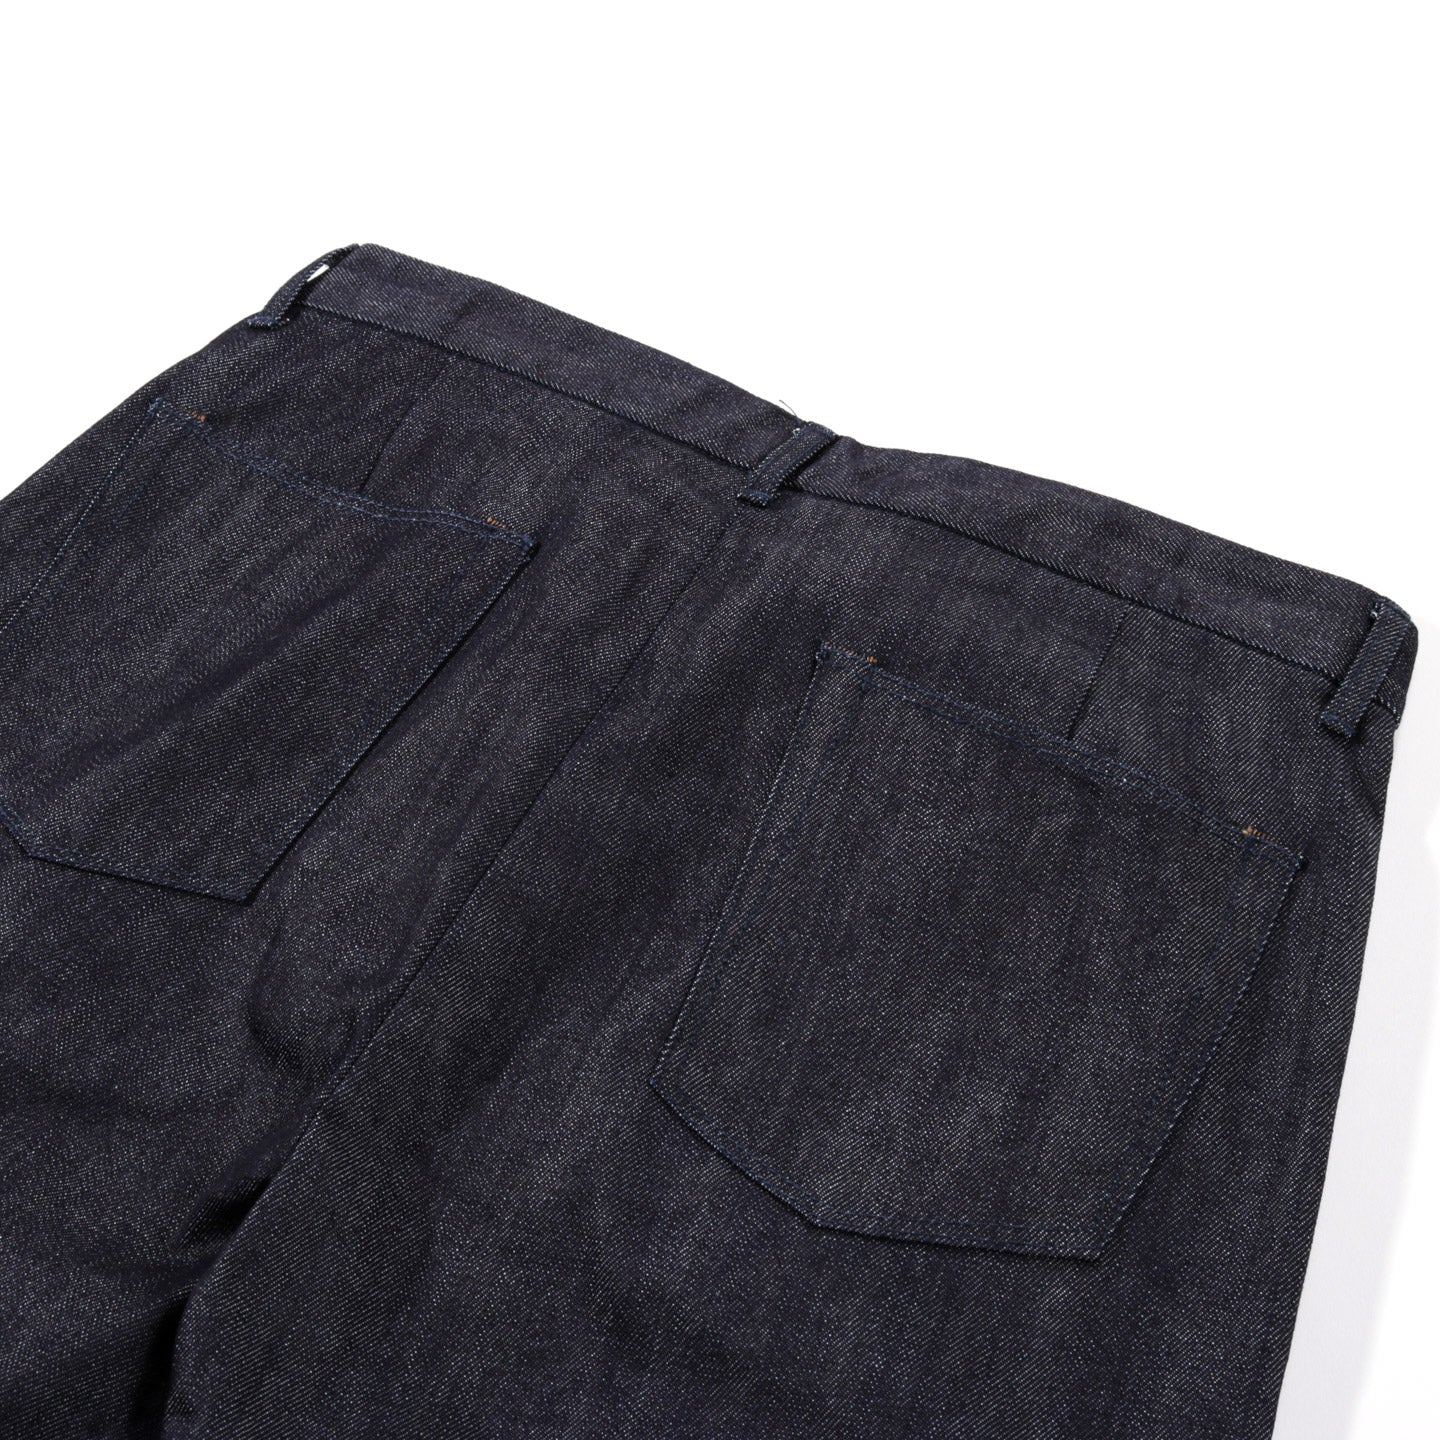 STILL BY HAND INNER COATED PANTS NAVY